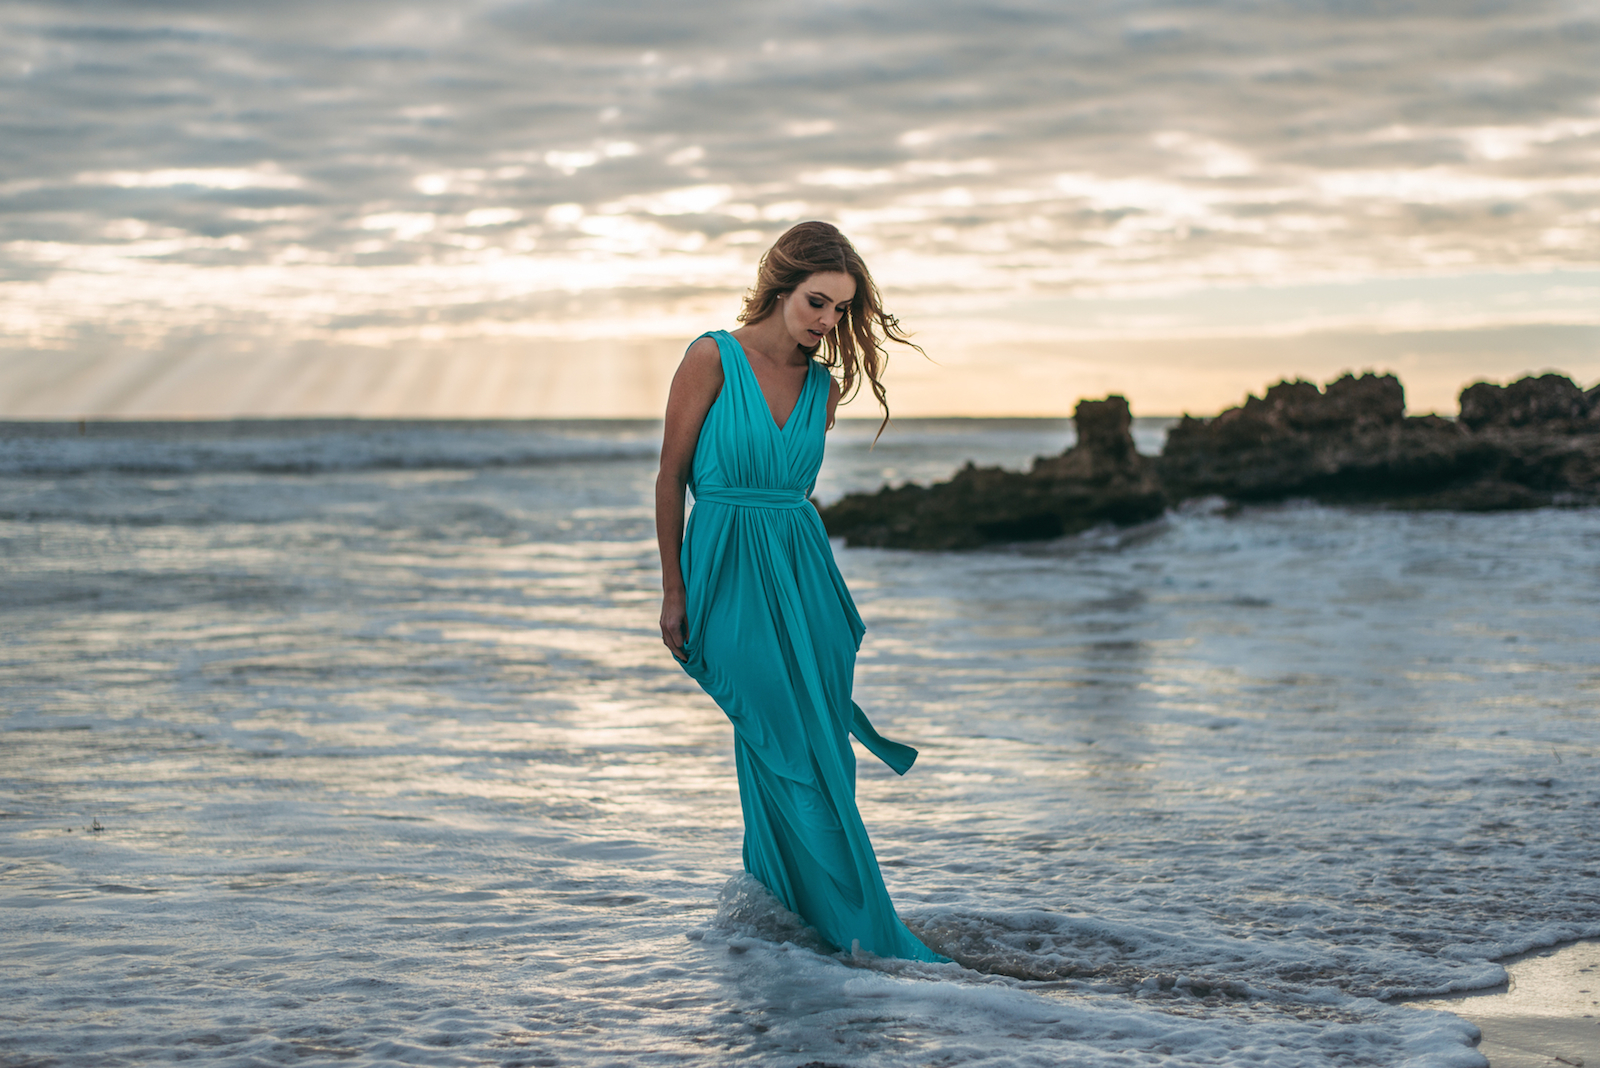 Stormborn - Ocean Reef Beach shoot Perth Blog - Katie Rebekah